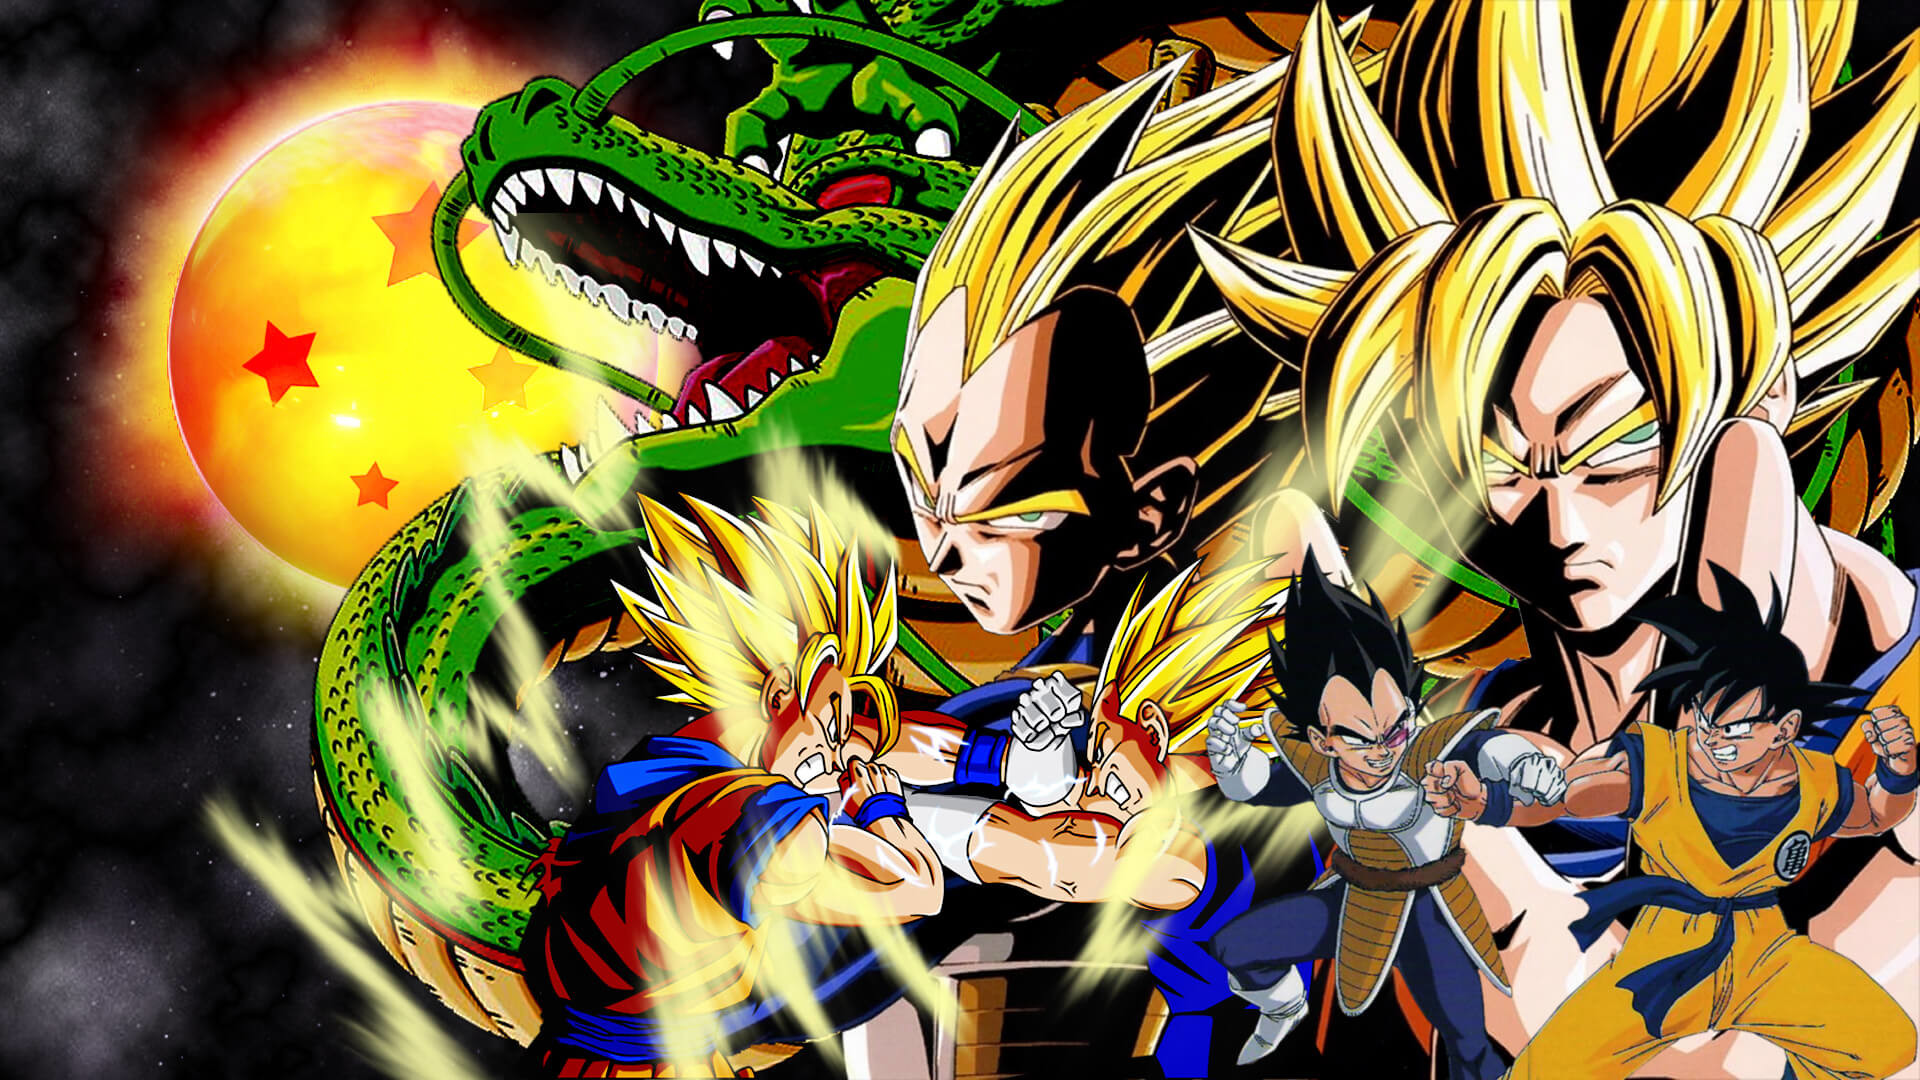 goku vs vegeta wallpaper (65+ images)